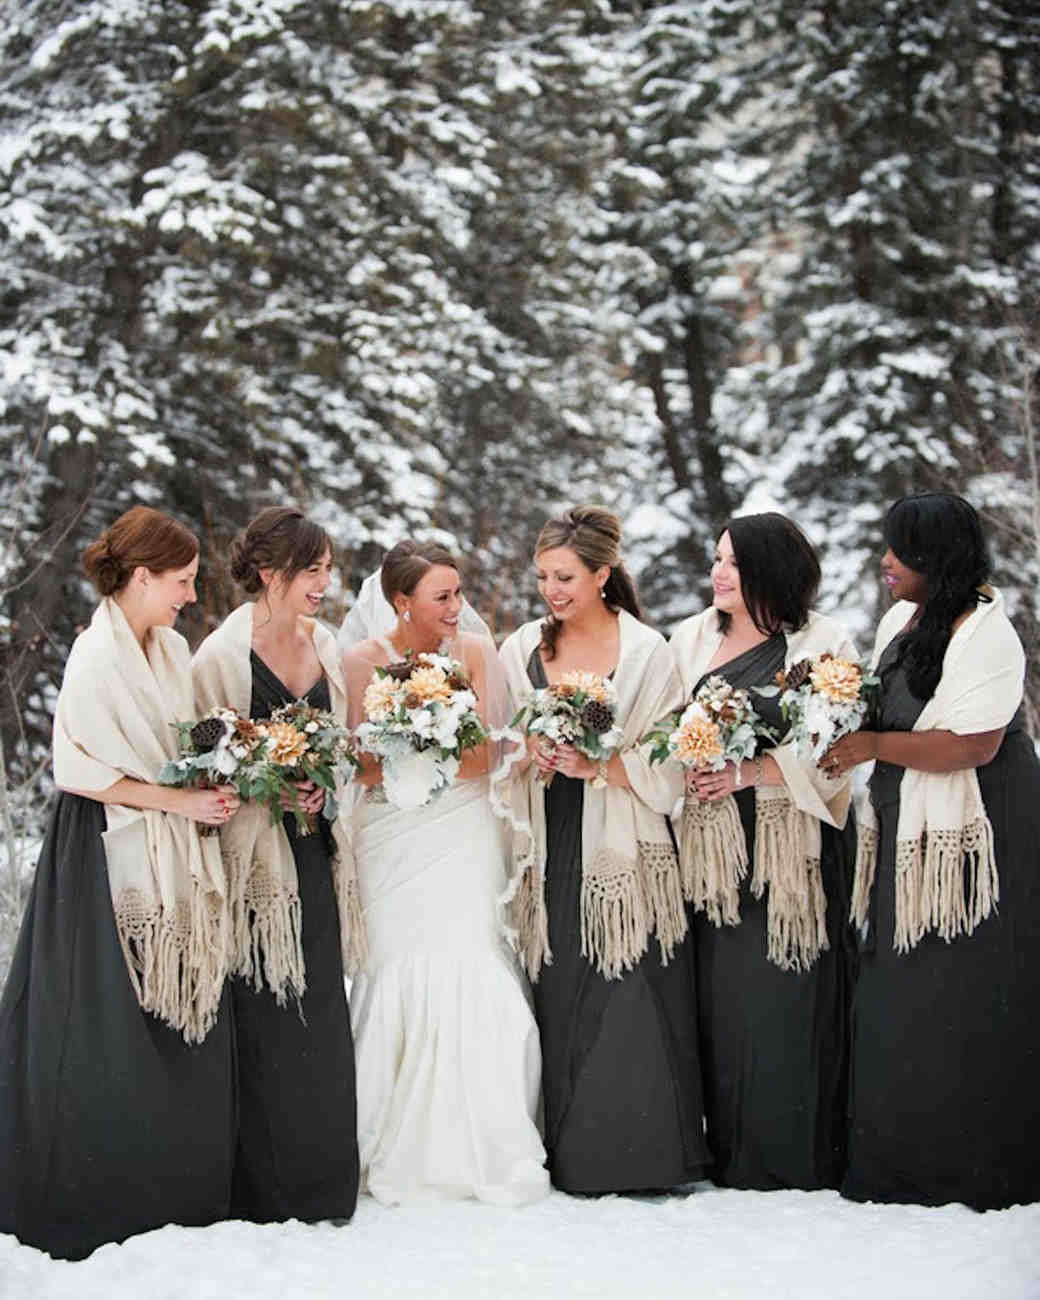 7 Simple Ways To Make Your Winter Wedding Cozy